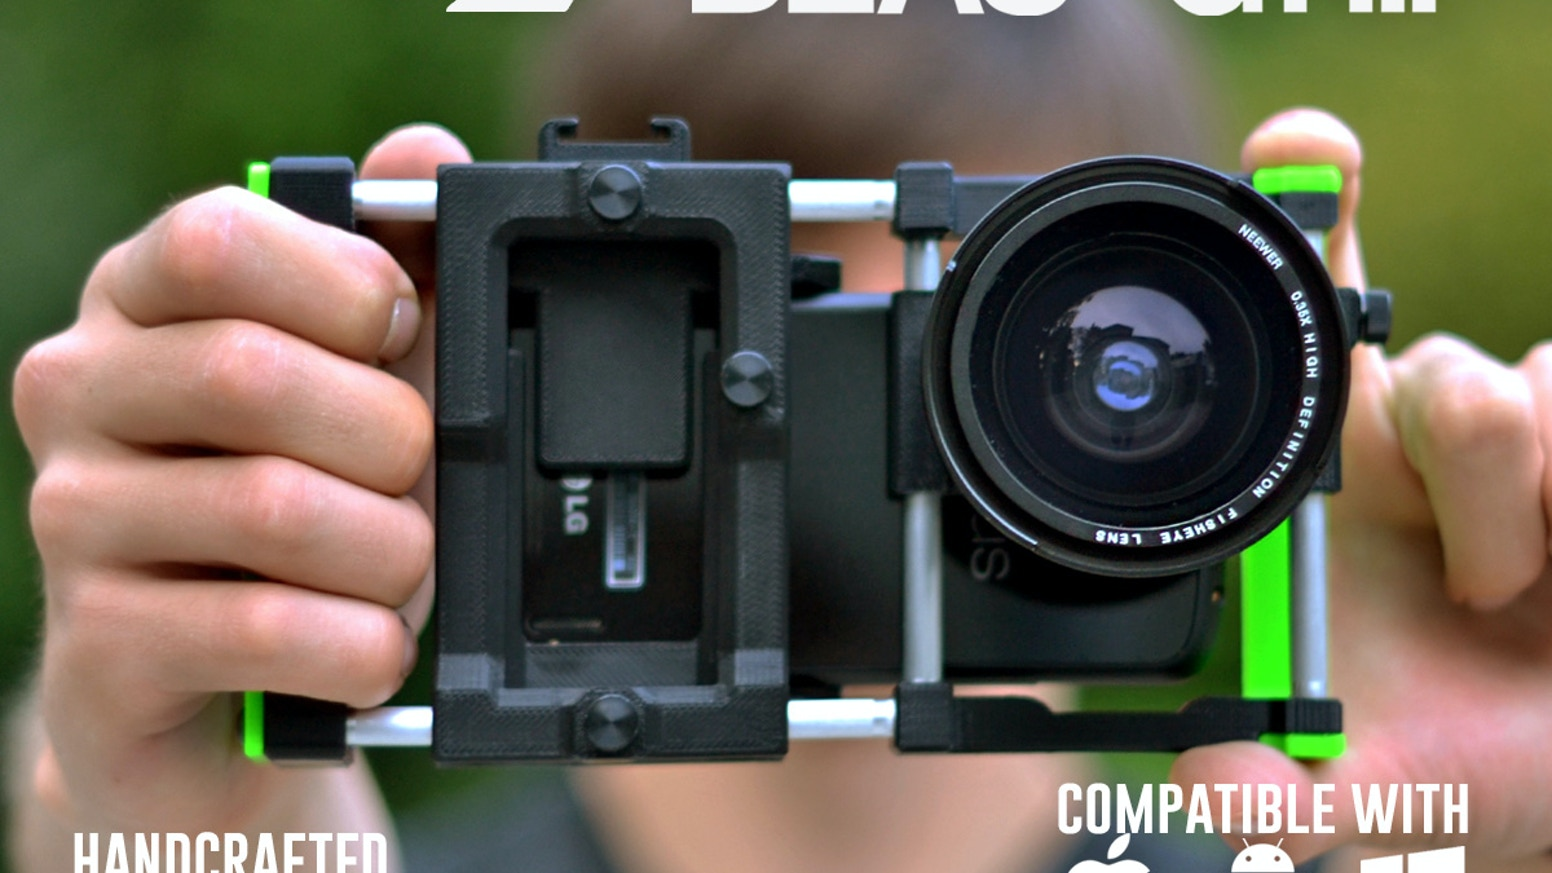 Beastgrip - universal lens adapter and rig system for iPhone, Android or Windows phones. Second generation of Beastgrip is back on Kickstarter